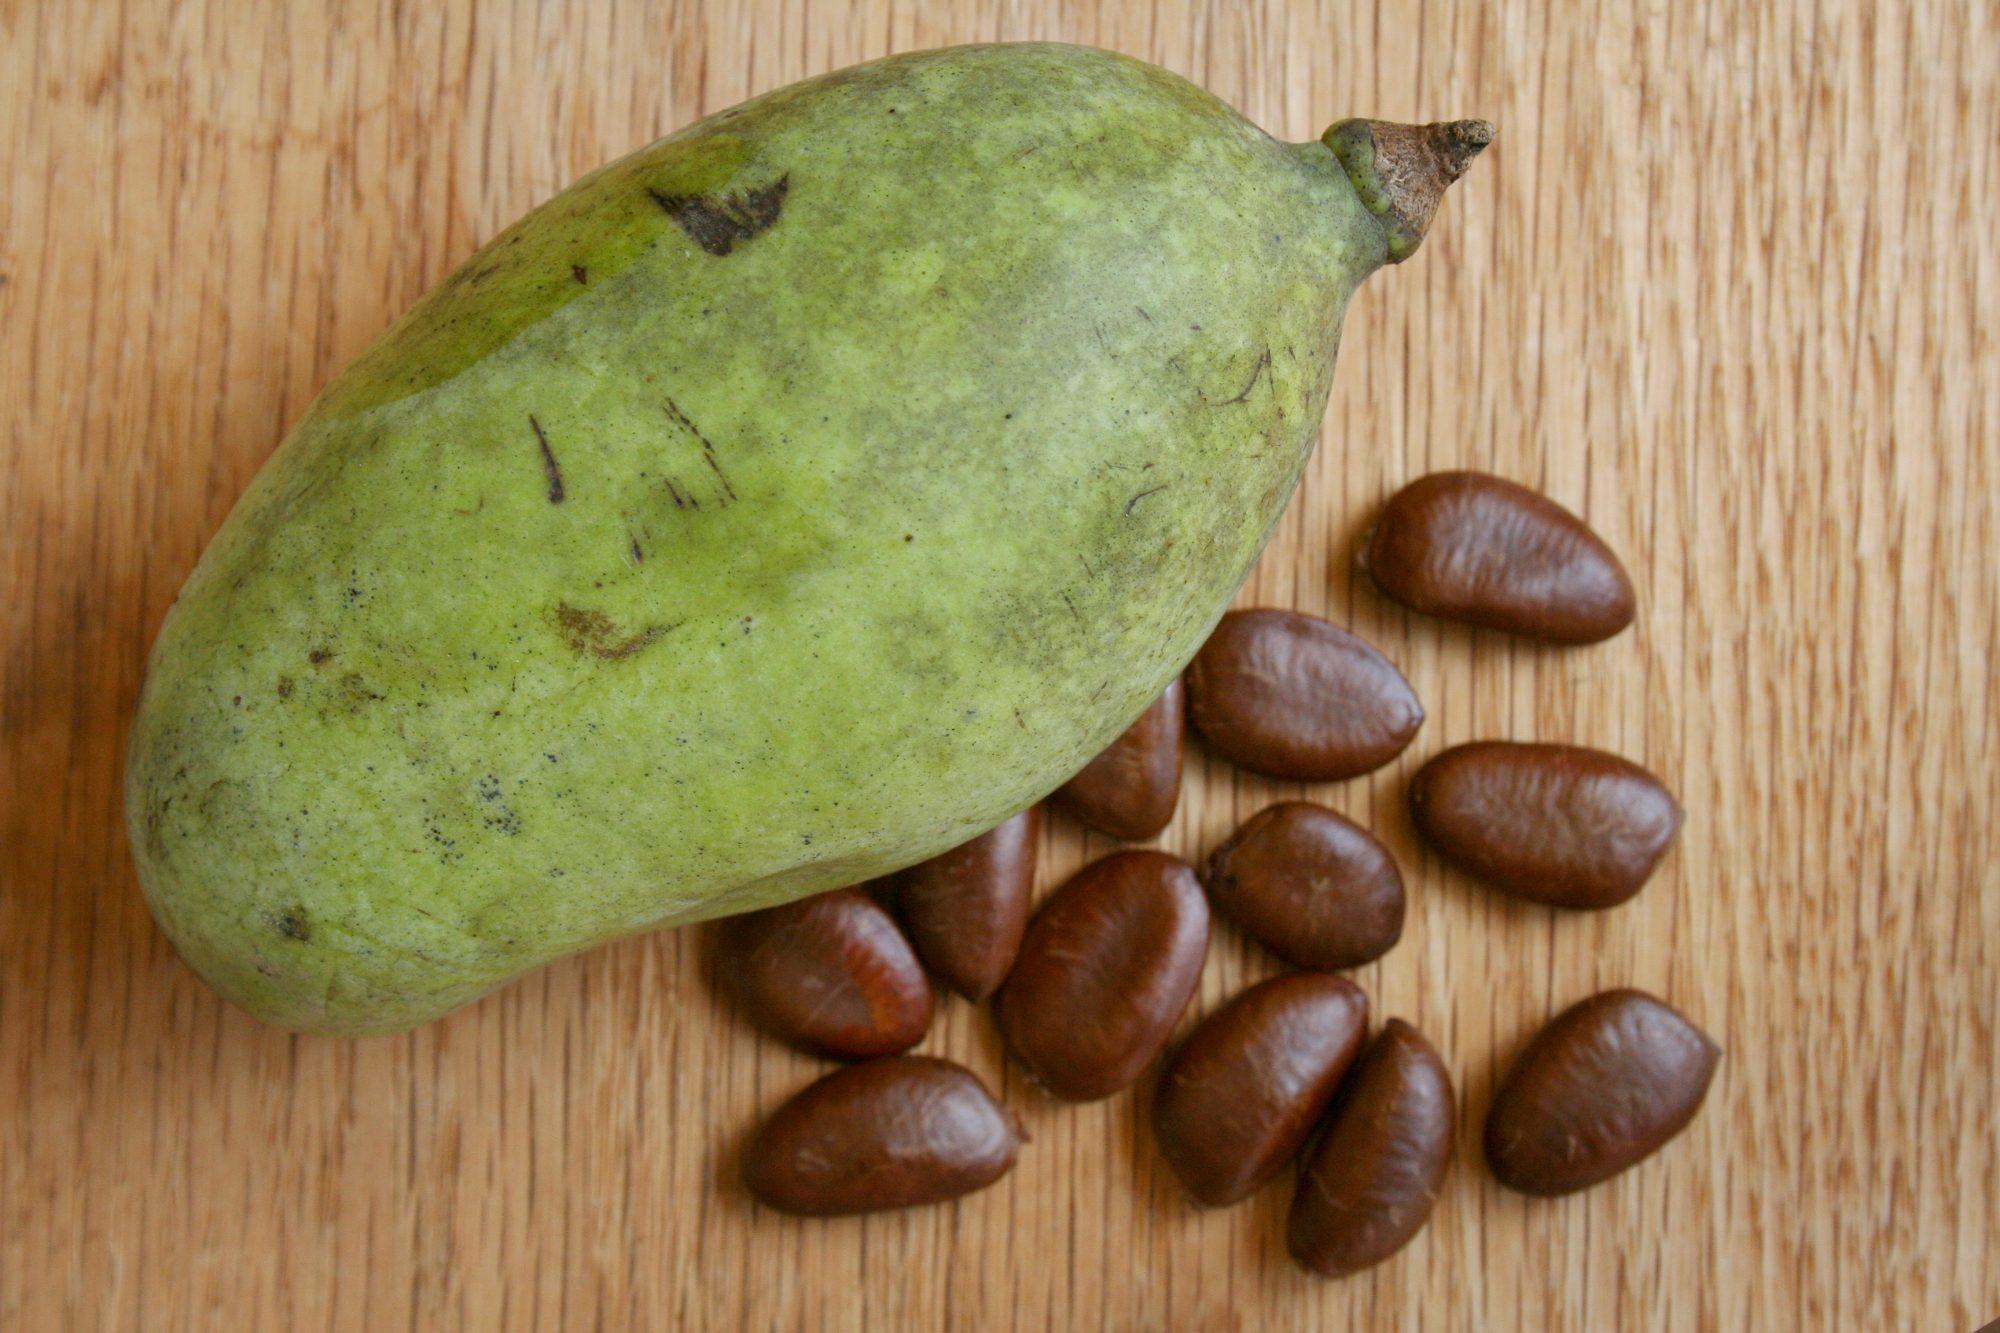 What Is a Pawpaw, and Why Is It So Magical?